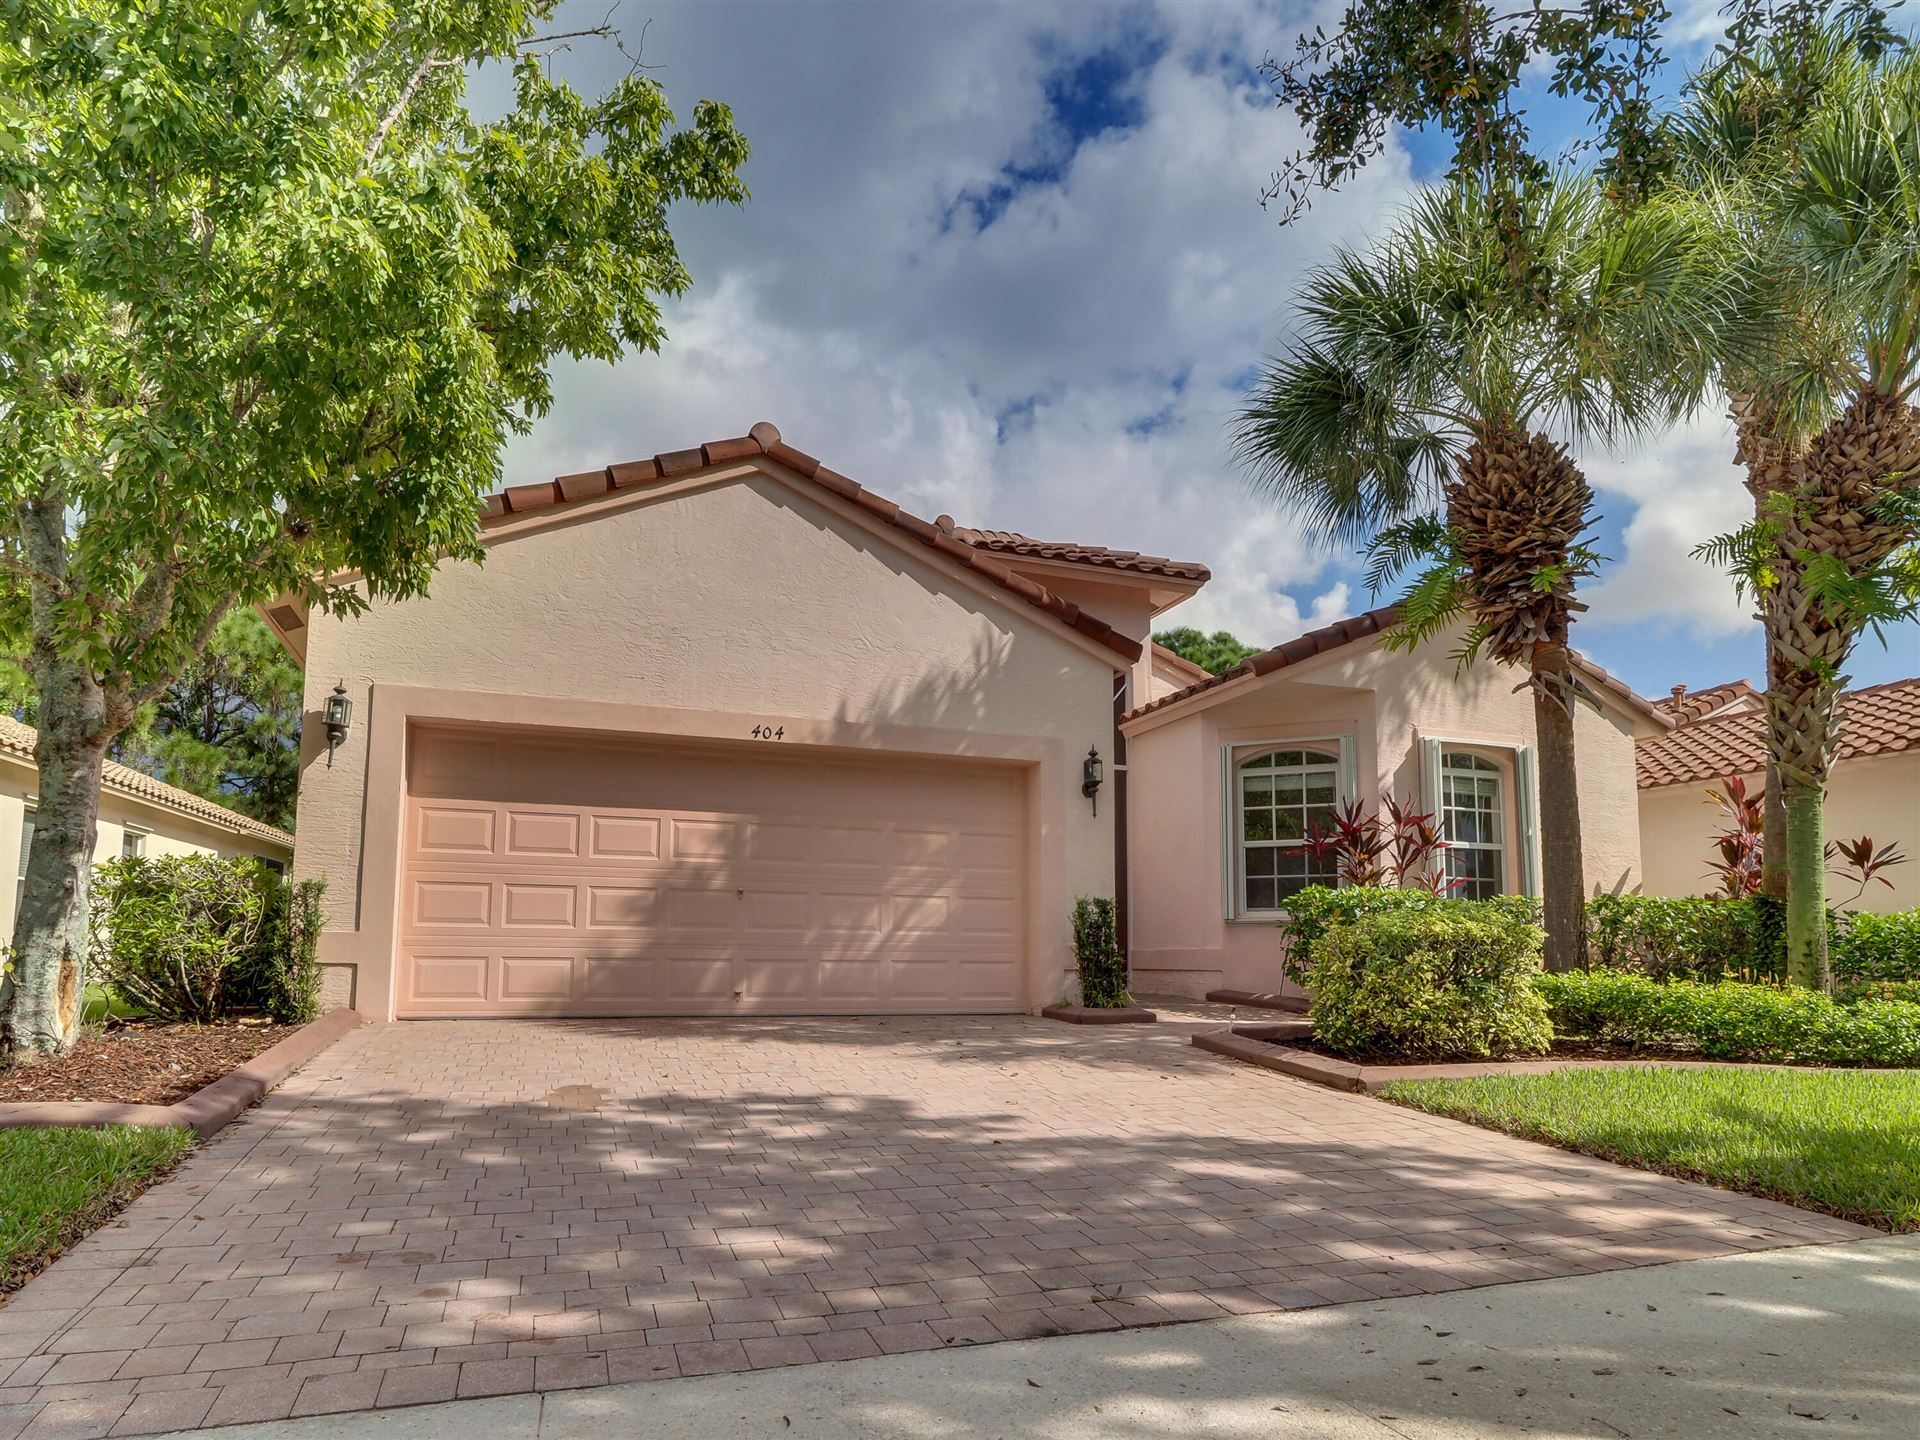 404 NW Sunview Way, Port Saint Lucie, FL 34986 - MLS#: RX-10747956